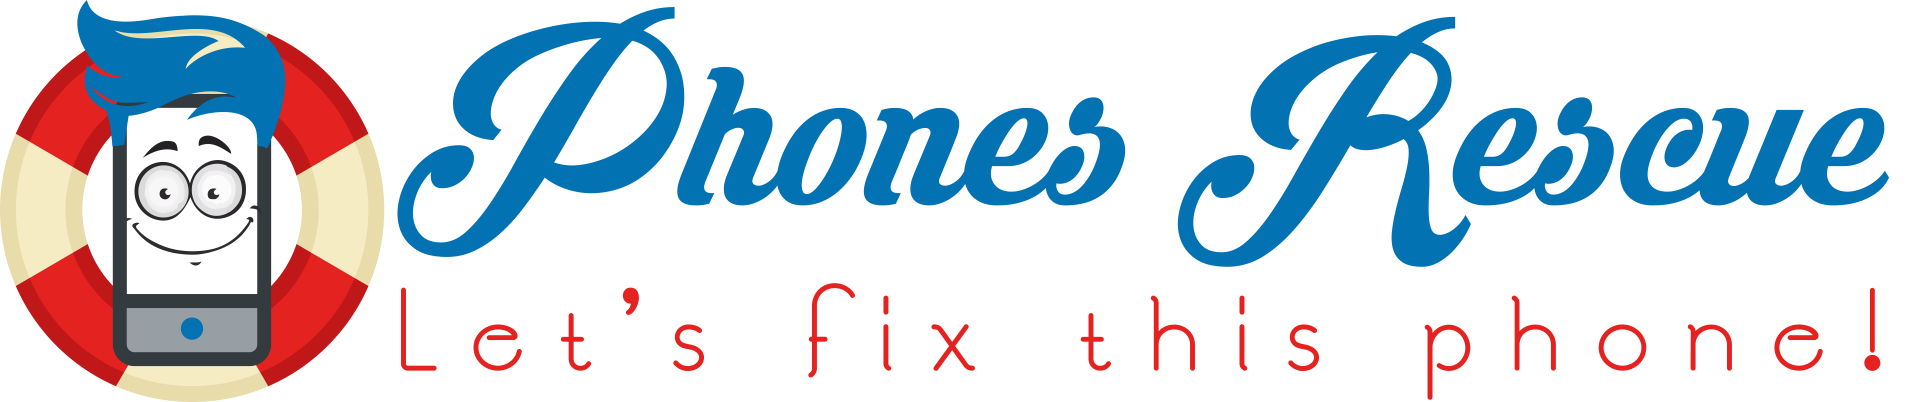 Phones Rescue – Phone, Laptop, Tablet and Console repair in Bournemouth